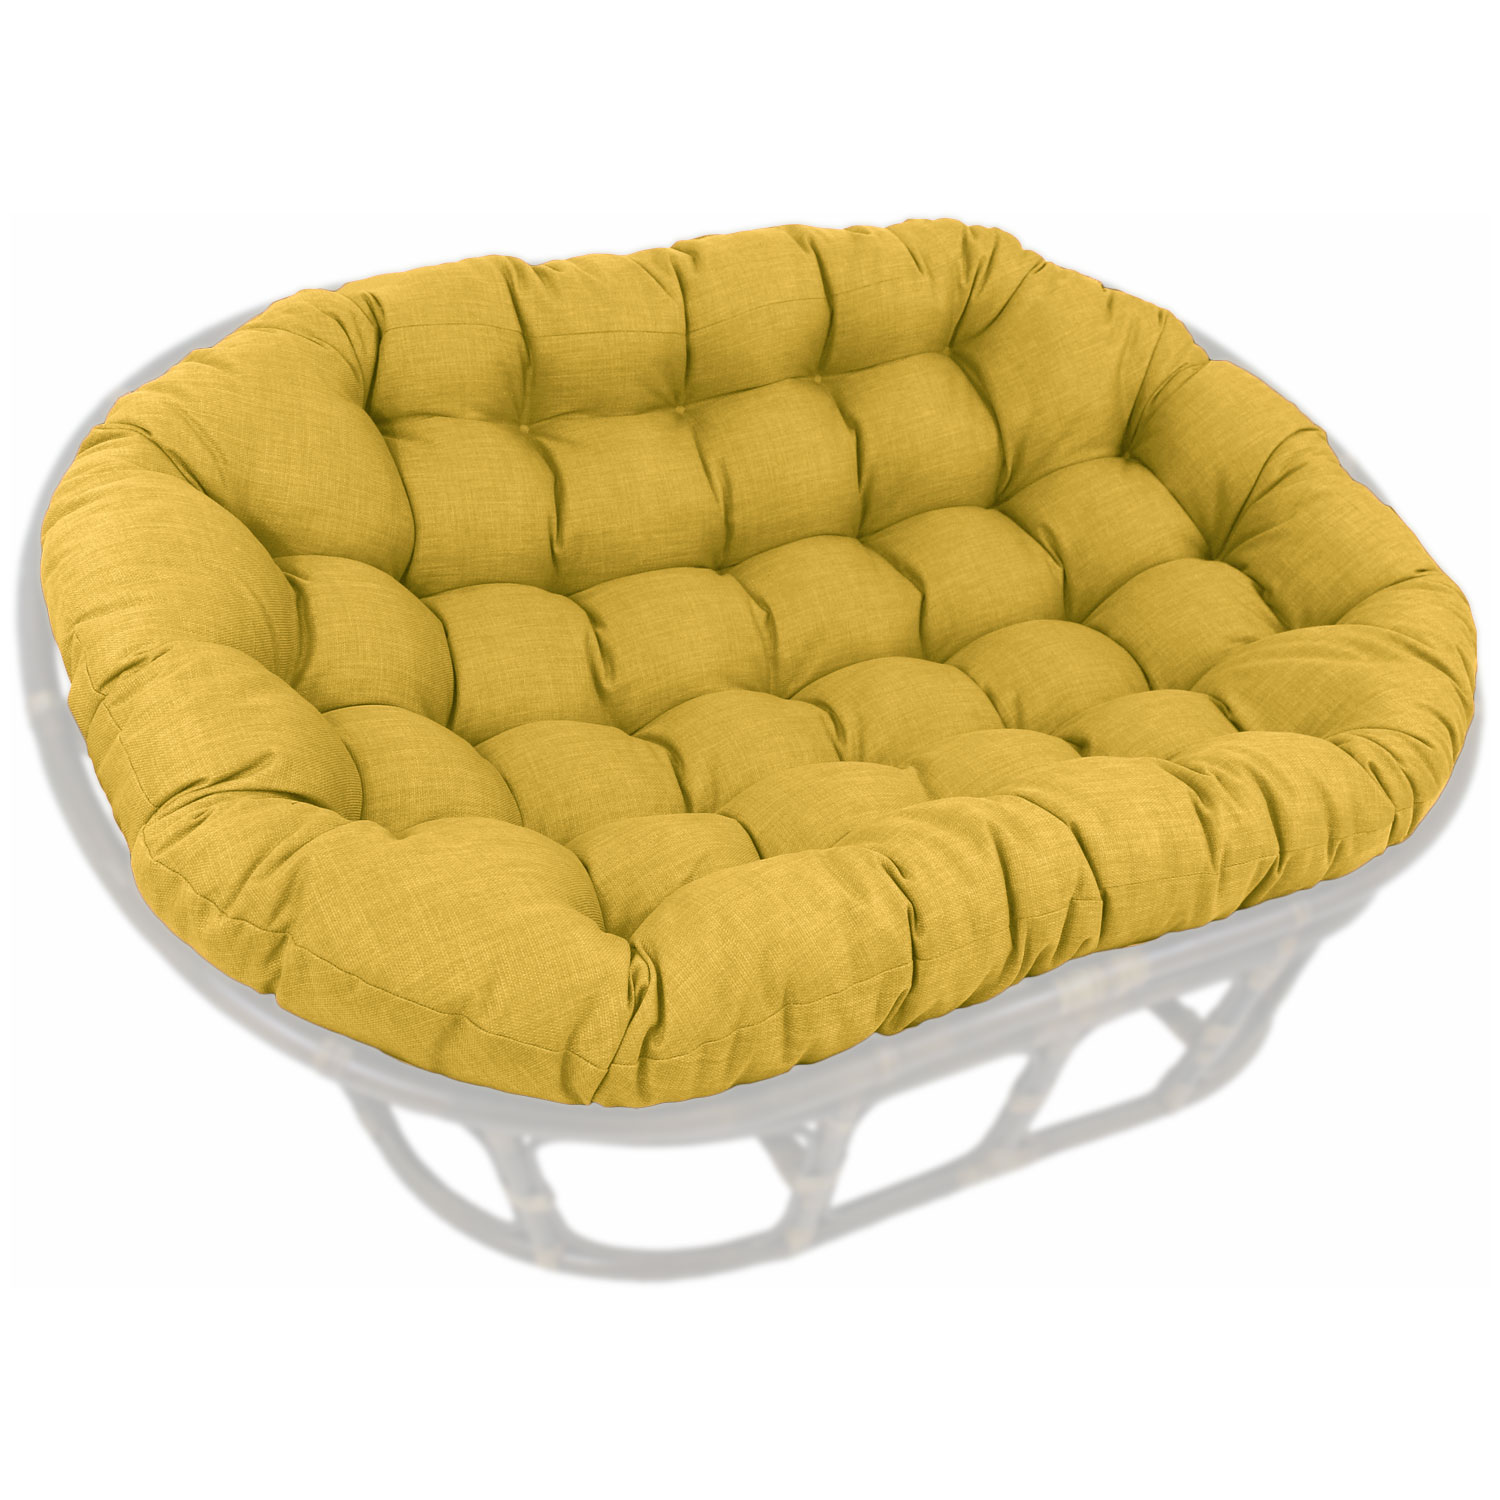 60 X 48 Outdoor Fabric Tufted Double Papasan Cushion Blz